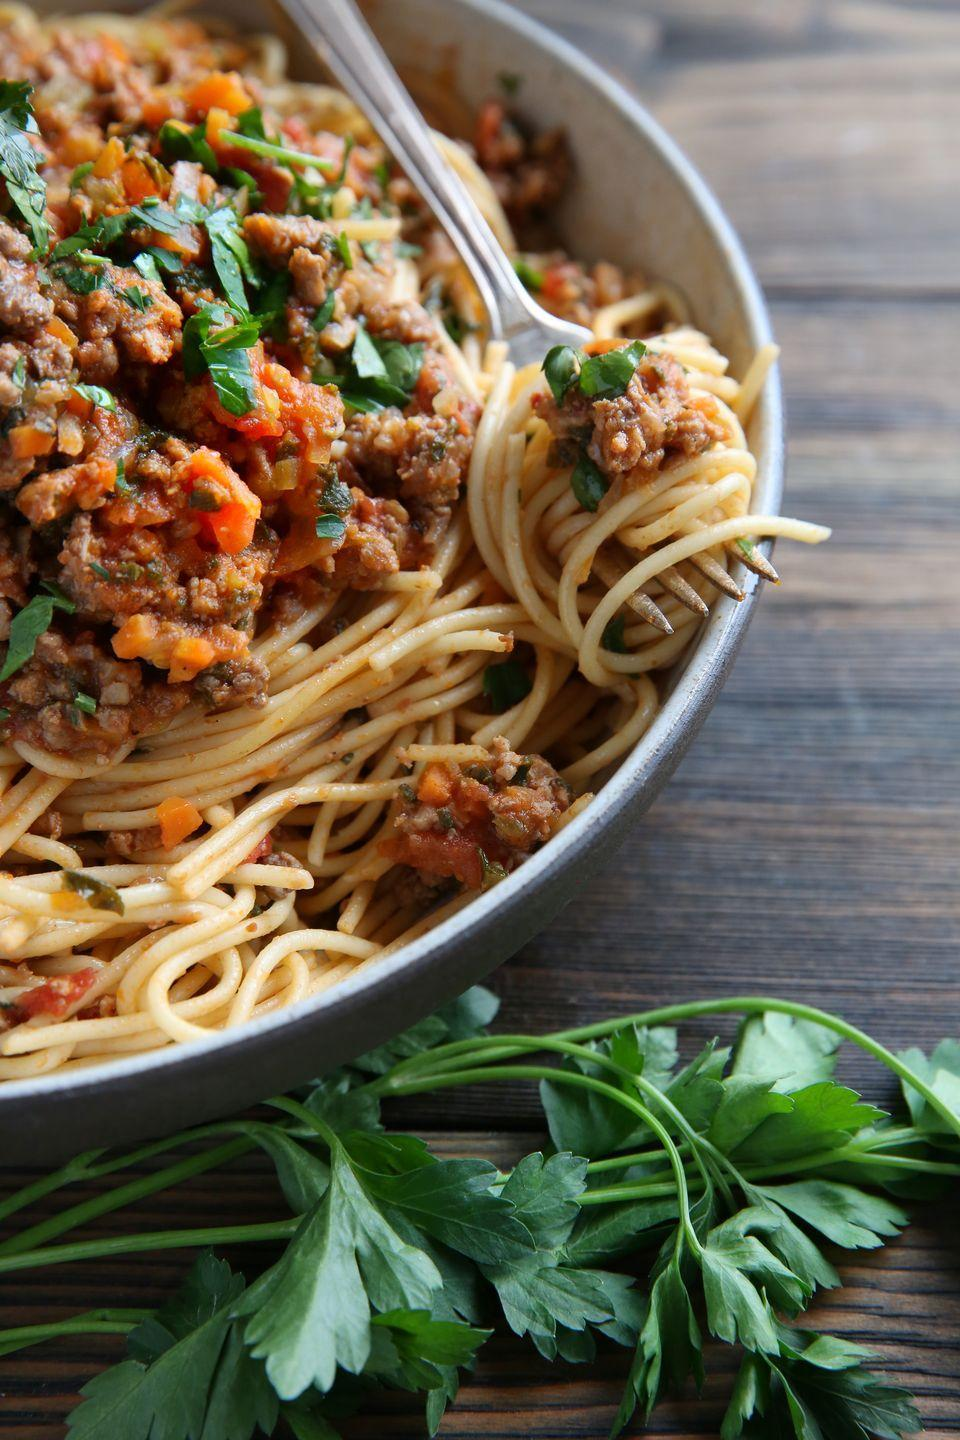 """<p>This ragu contains not one, but two different kinds of meat—pork sausage and ground beef— and *loads* of flavor.</p><p>Get the recipe from <a href=""""https://www.delish.com/cooking/recipe-ideas/recipes/a45800/sausage-kale-ragu-spaghetti-recipe/"""" rel=""""nofollow noopener"""" target=""""_blank"""" data-ylk=""""slk:Delish"""" class=""""link rapid-noclick-resp"""">Delish</a>.</p>"""